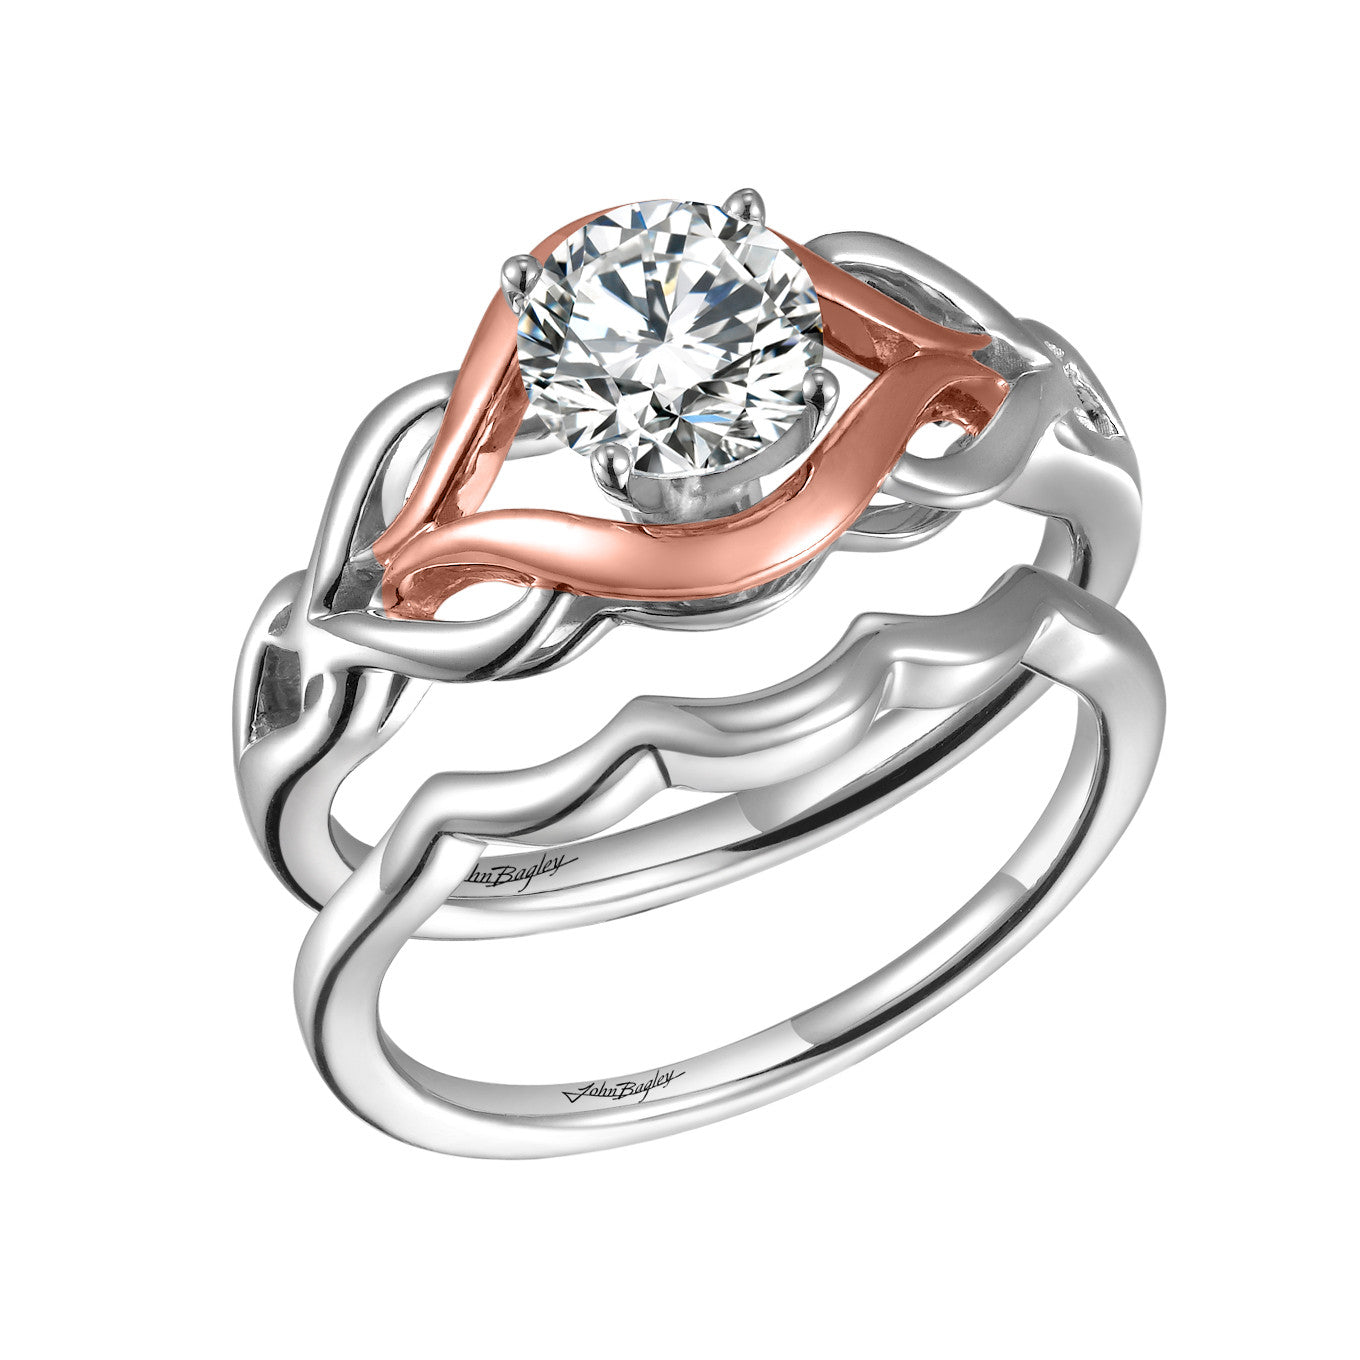 Rose Gold Solitaire Engagement Ring Set